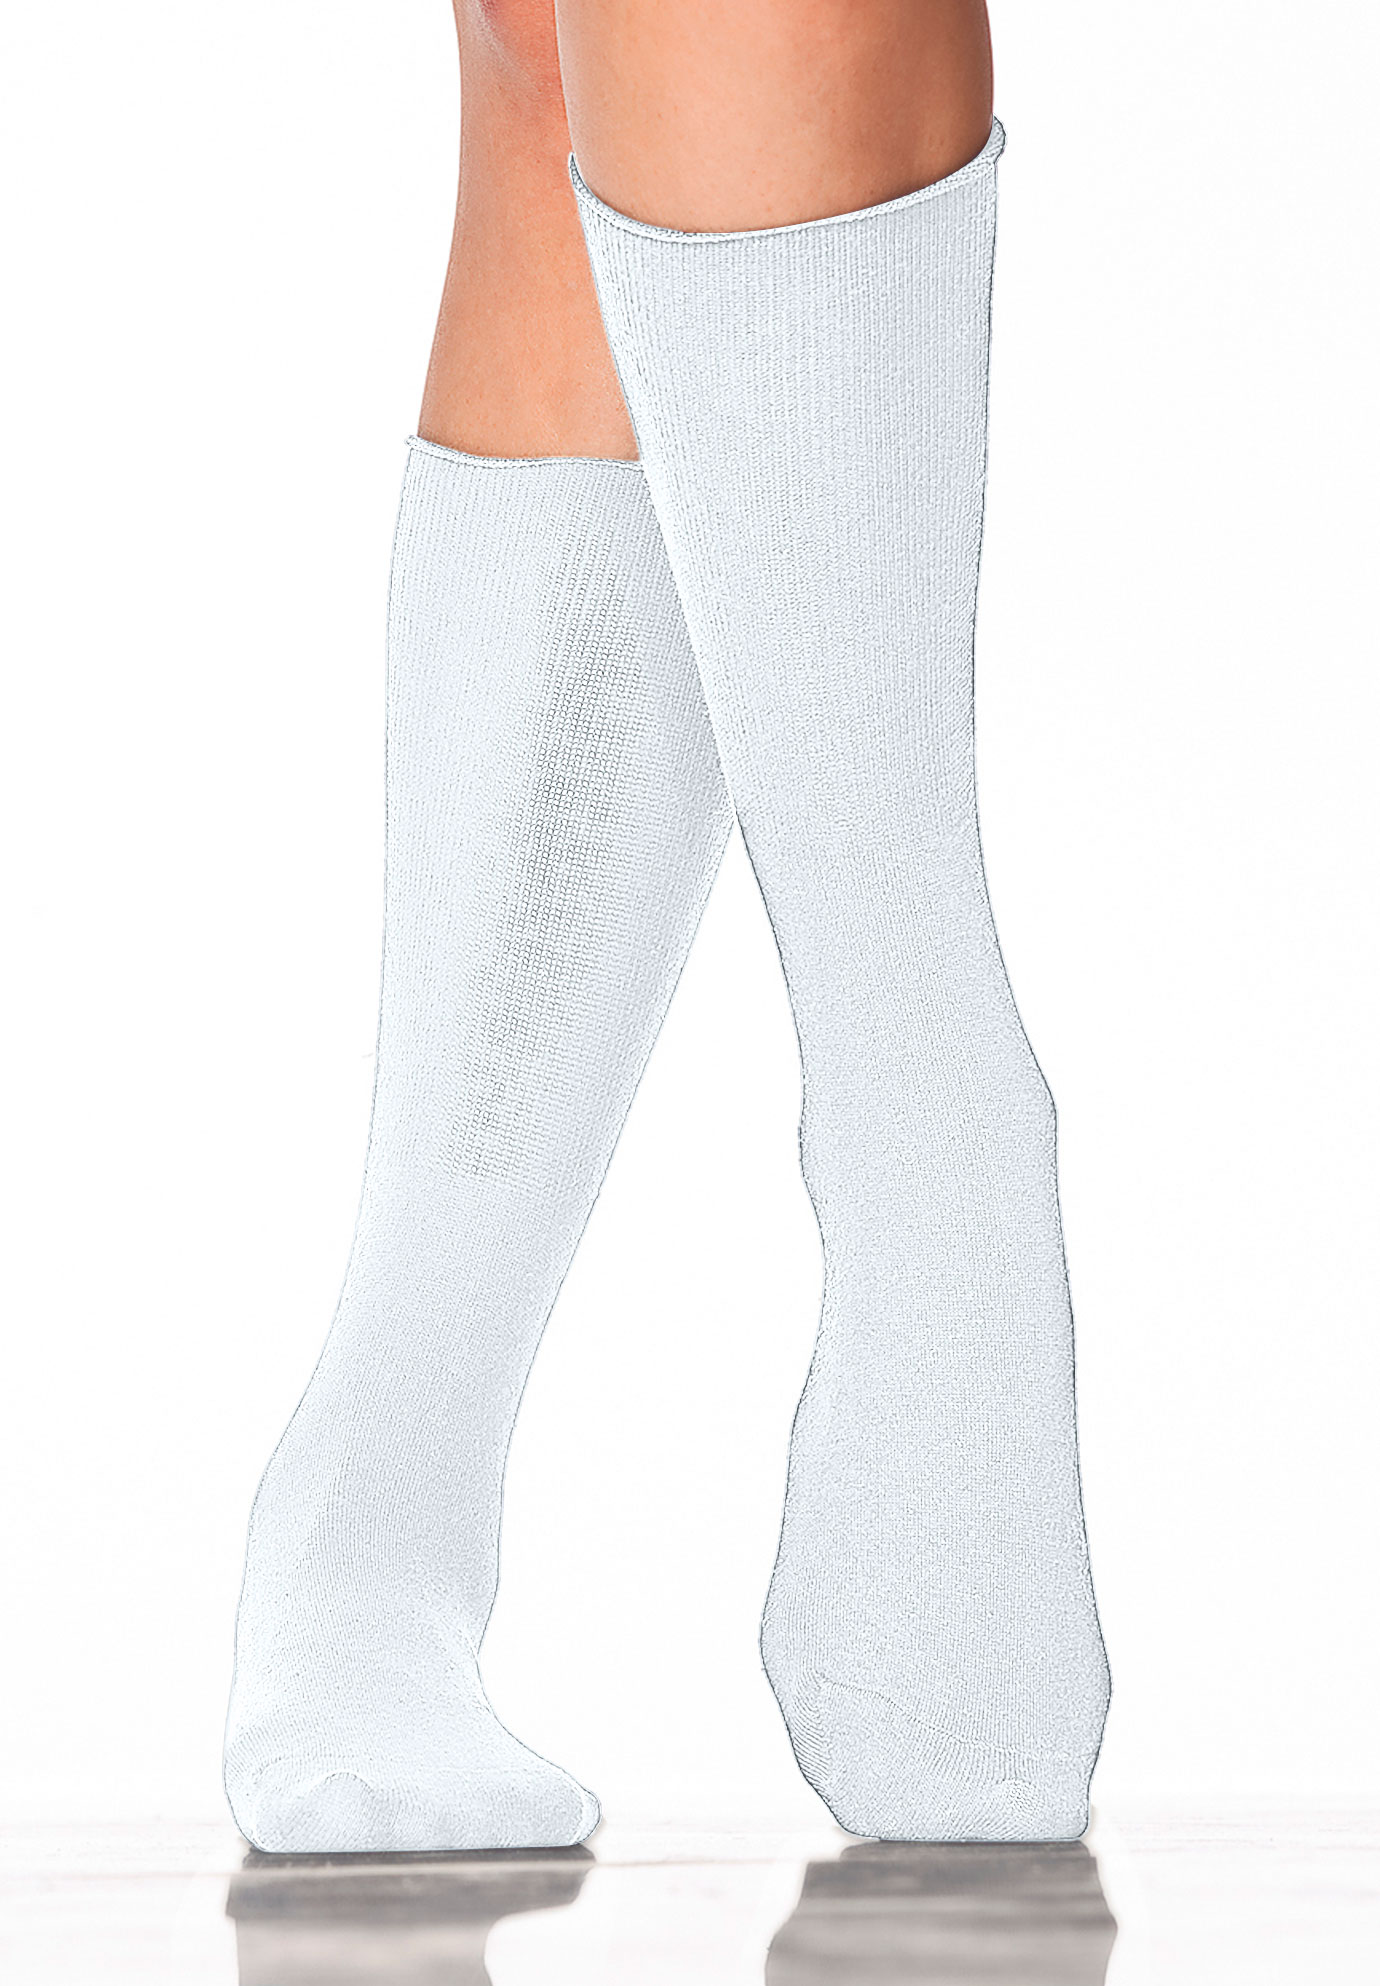 2-pack cotton trouser socks by Comfort Choice®,